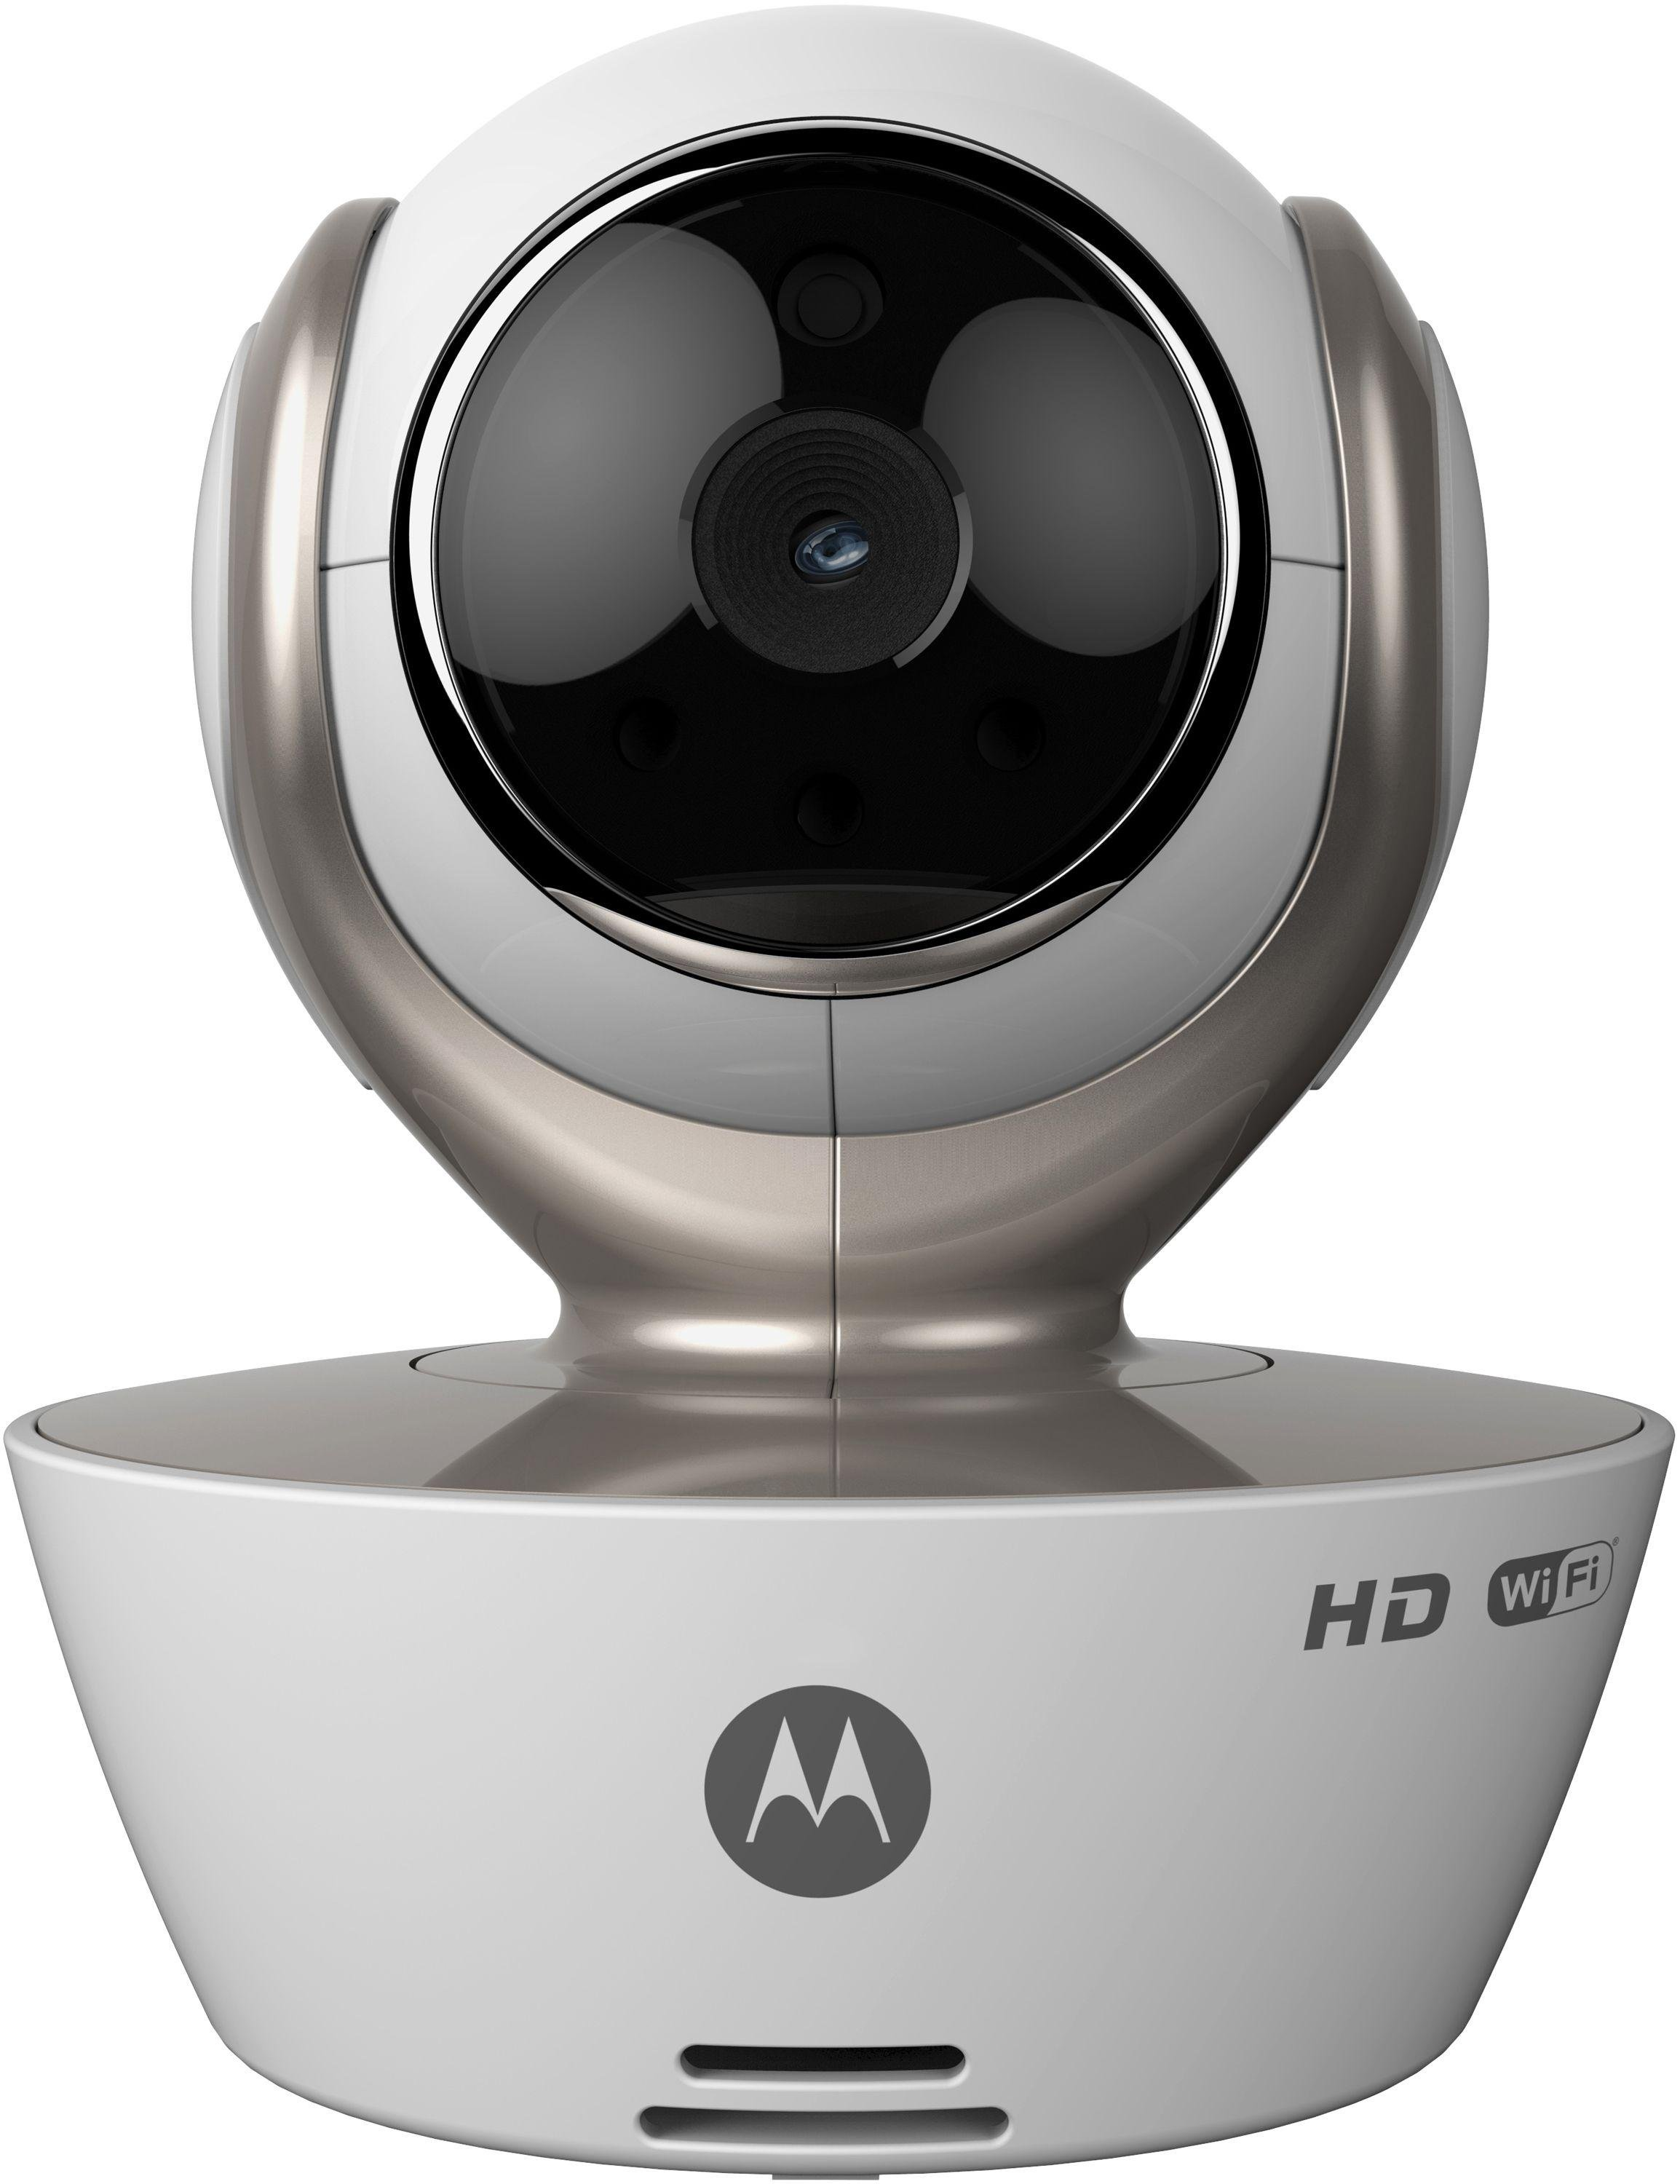 Image of Motorola - Focus 85 Wi-Fi Hd Security Camera